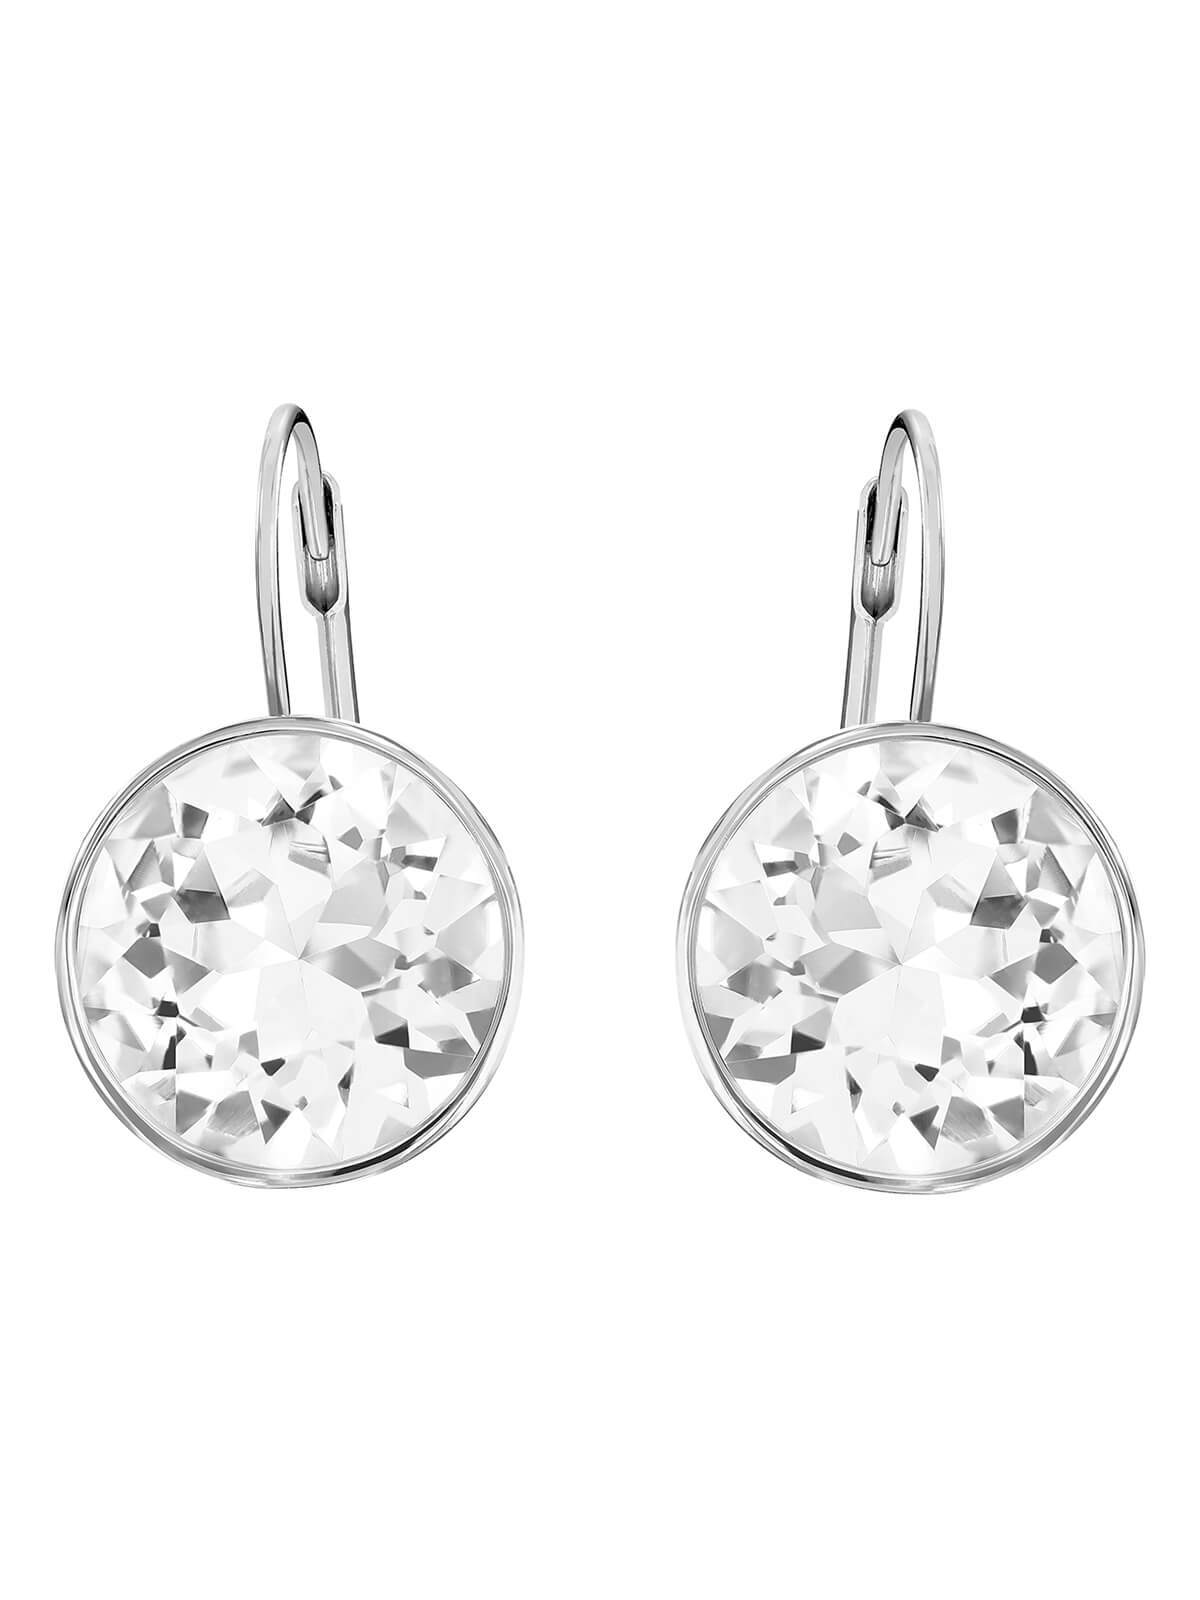 Swarovski Bella Rhodium Plated and Clear Crystal Earrings 883551